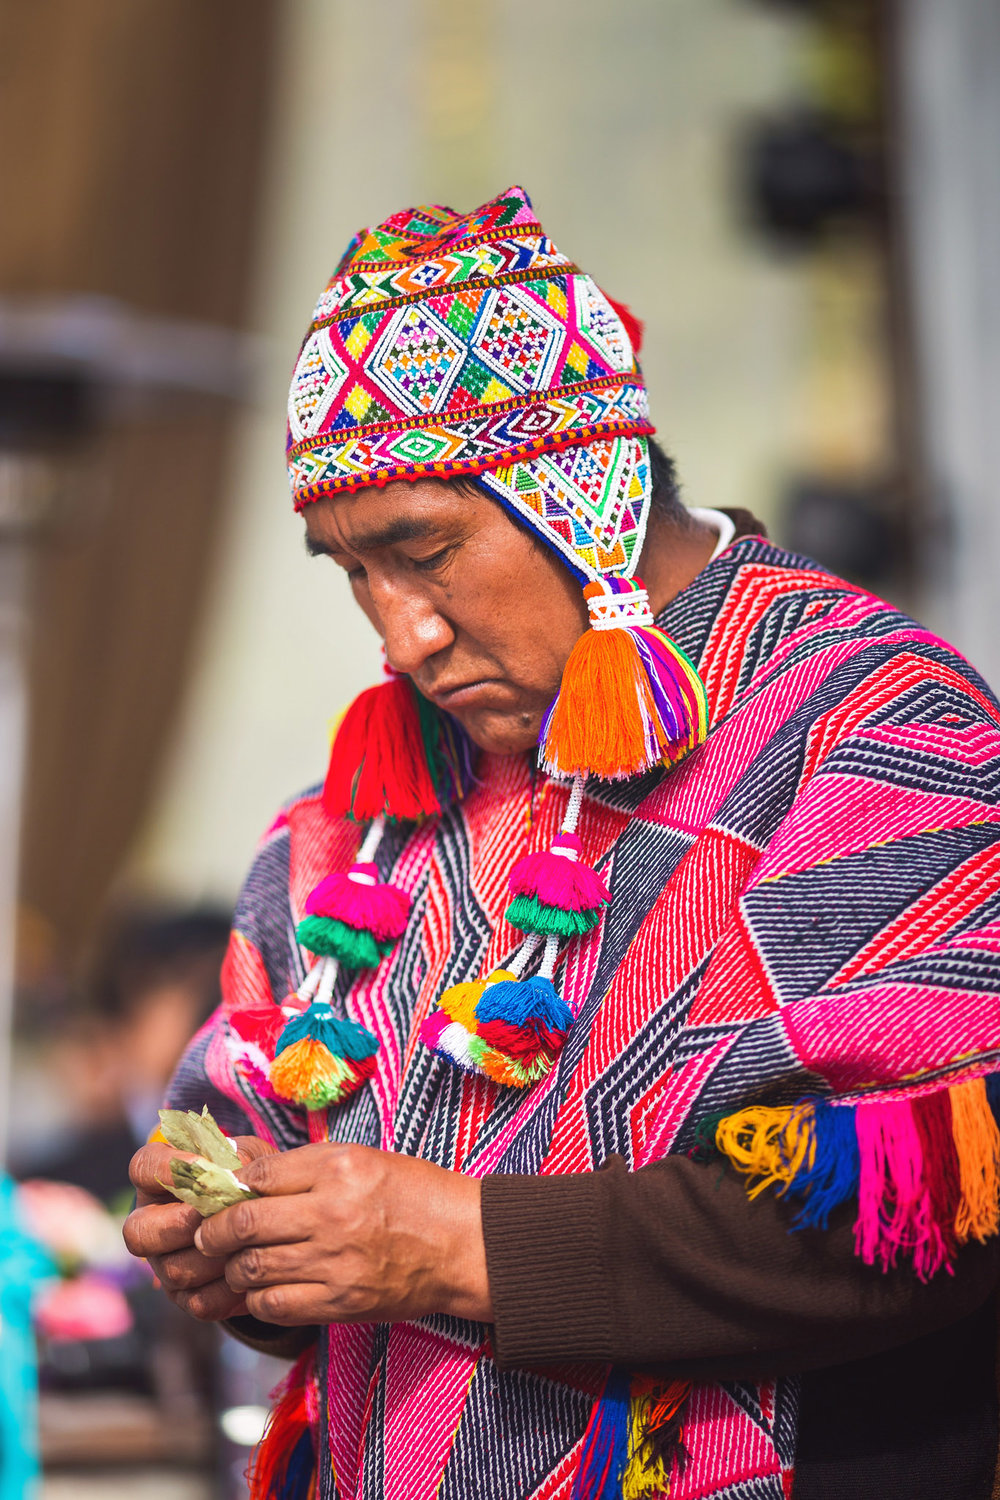 Wedding-Travellers-Destination-Wedding-Peru-Cusco-Hacienda-Sarapampa-Sacred-Valley-traditional-andean-ceremony-shaman-coca-leaf-preparing-despacho